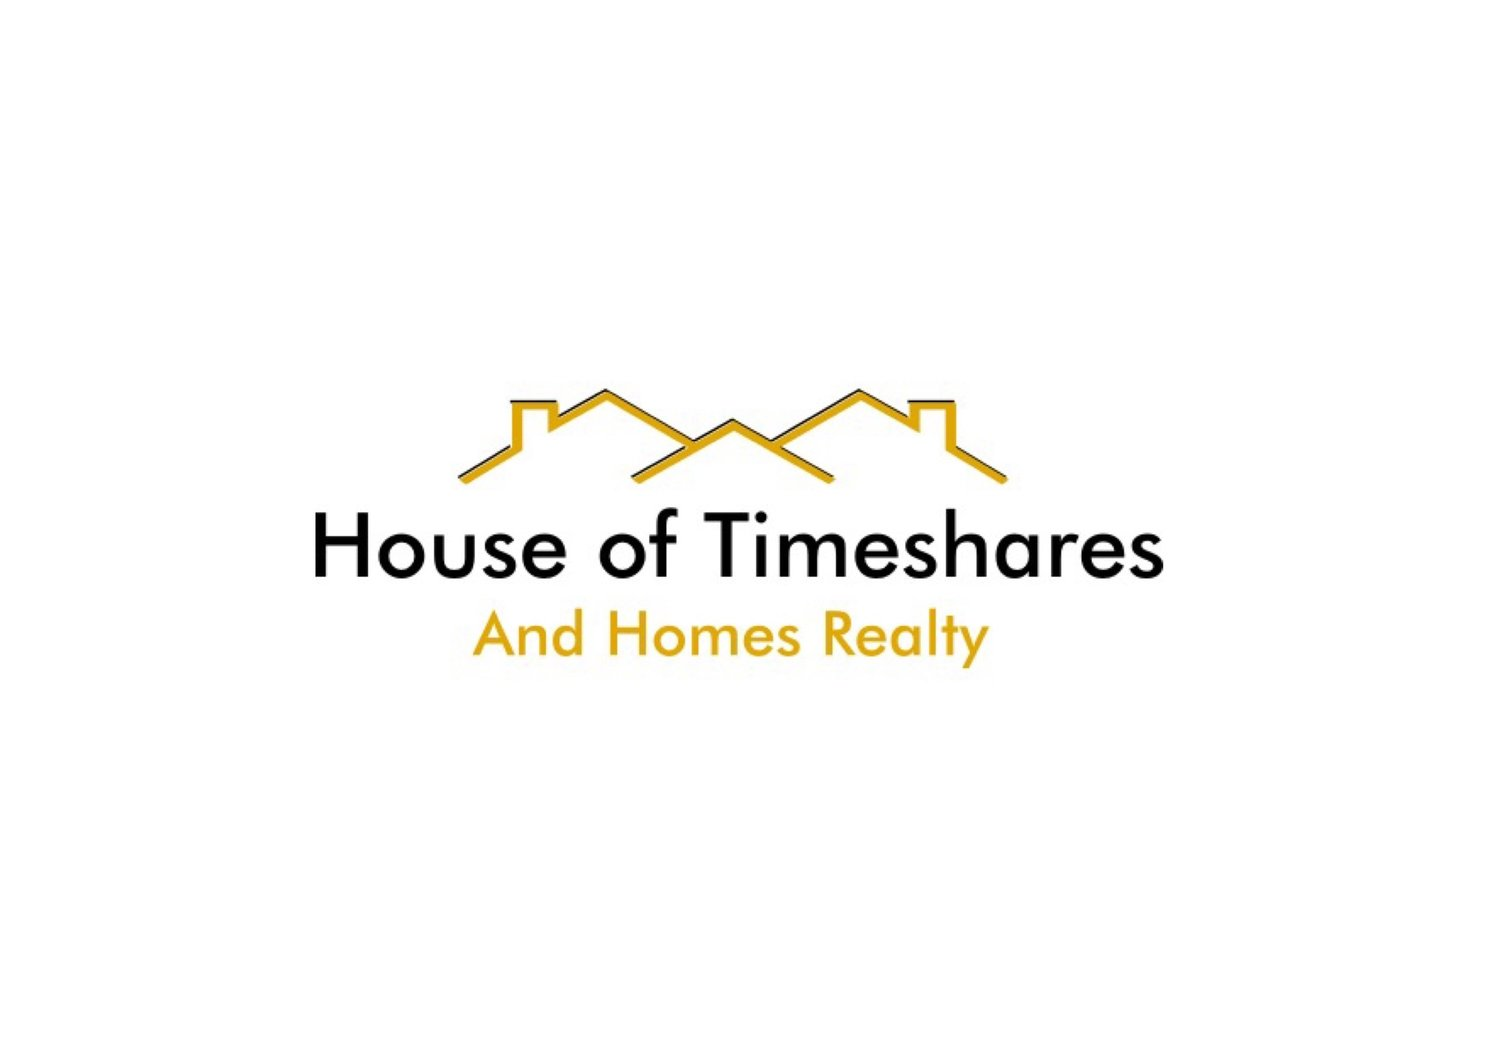 House of Timeshares and Homes Realty